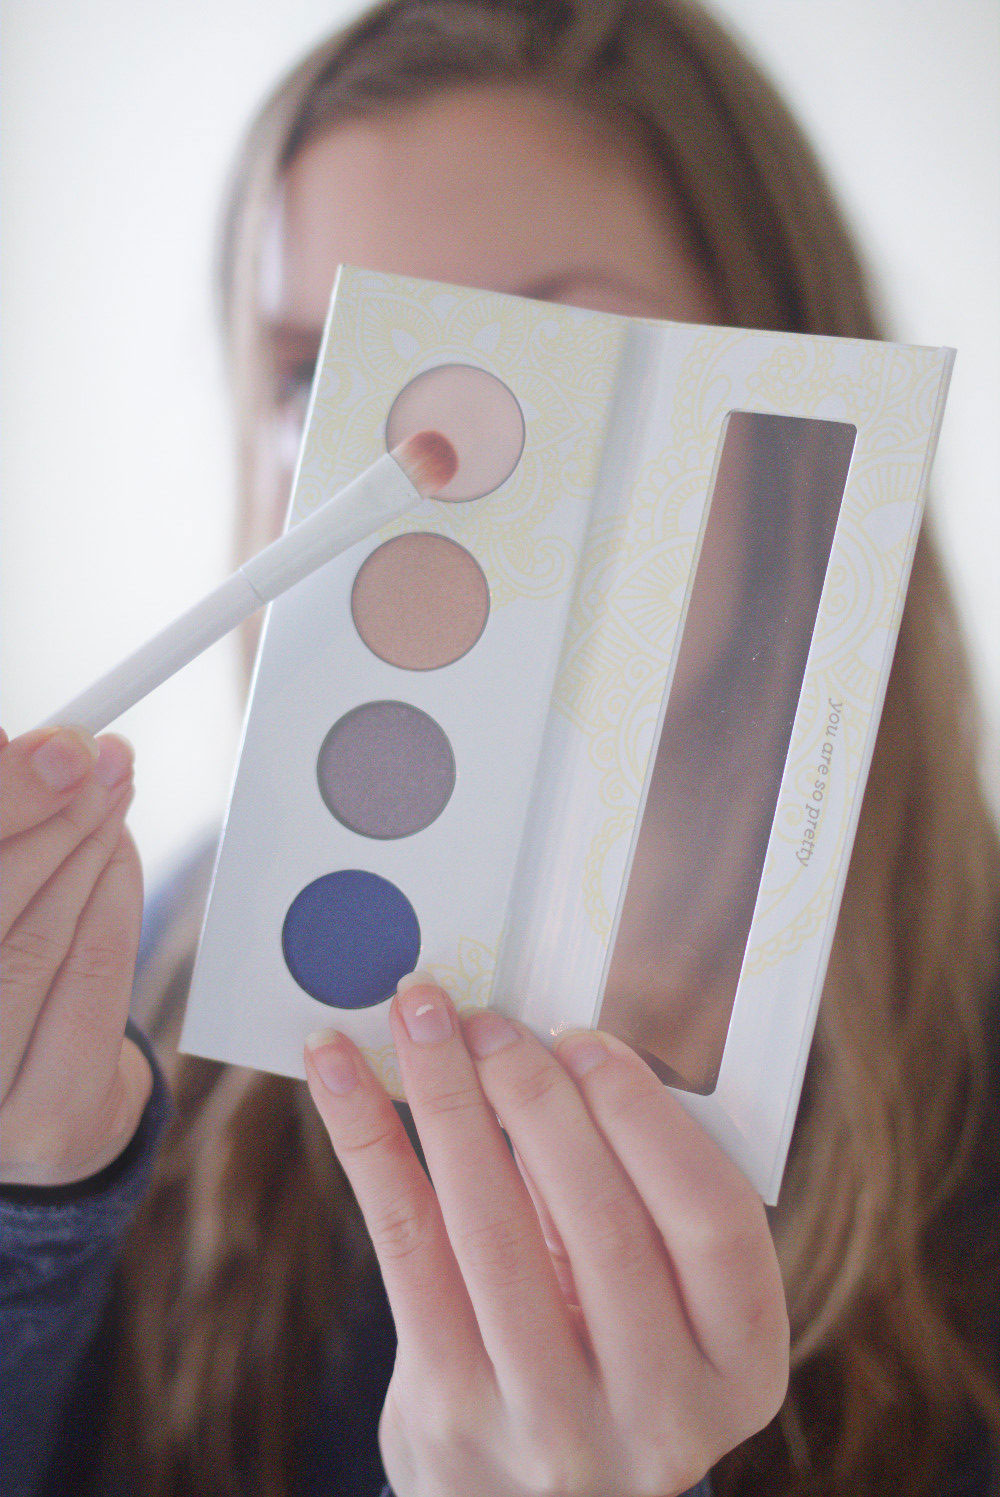 Pacifica Mystical Eye Brightening Palette // Hello Rigby Seattle Beauty Blog